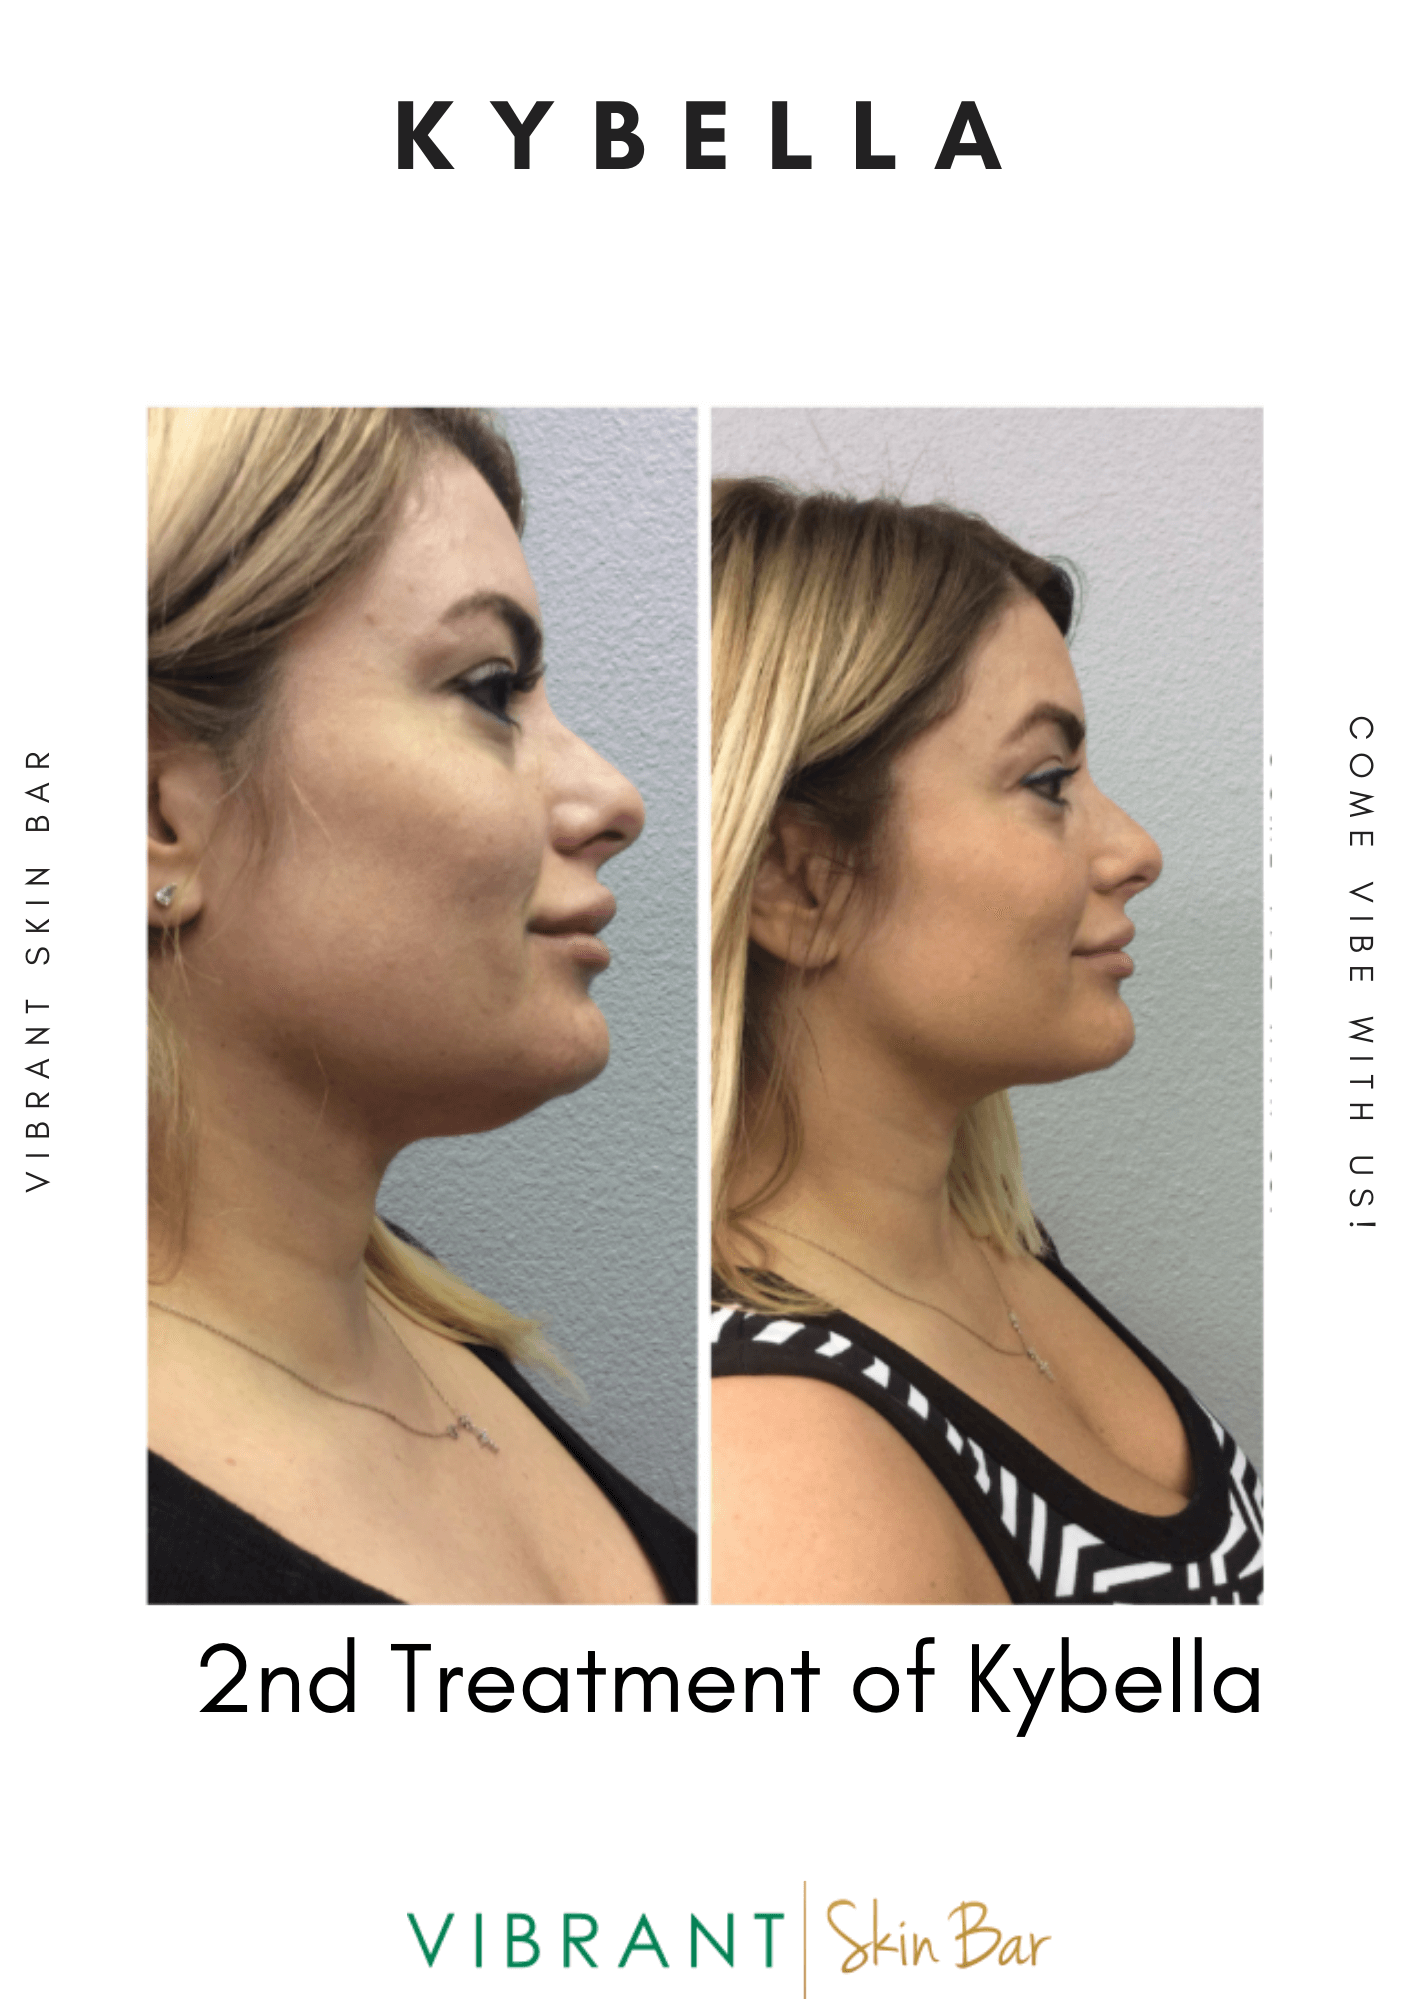 Before and after - 2nd treatment of kybella